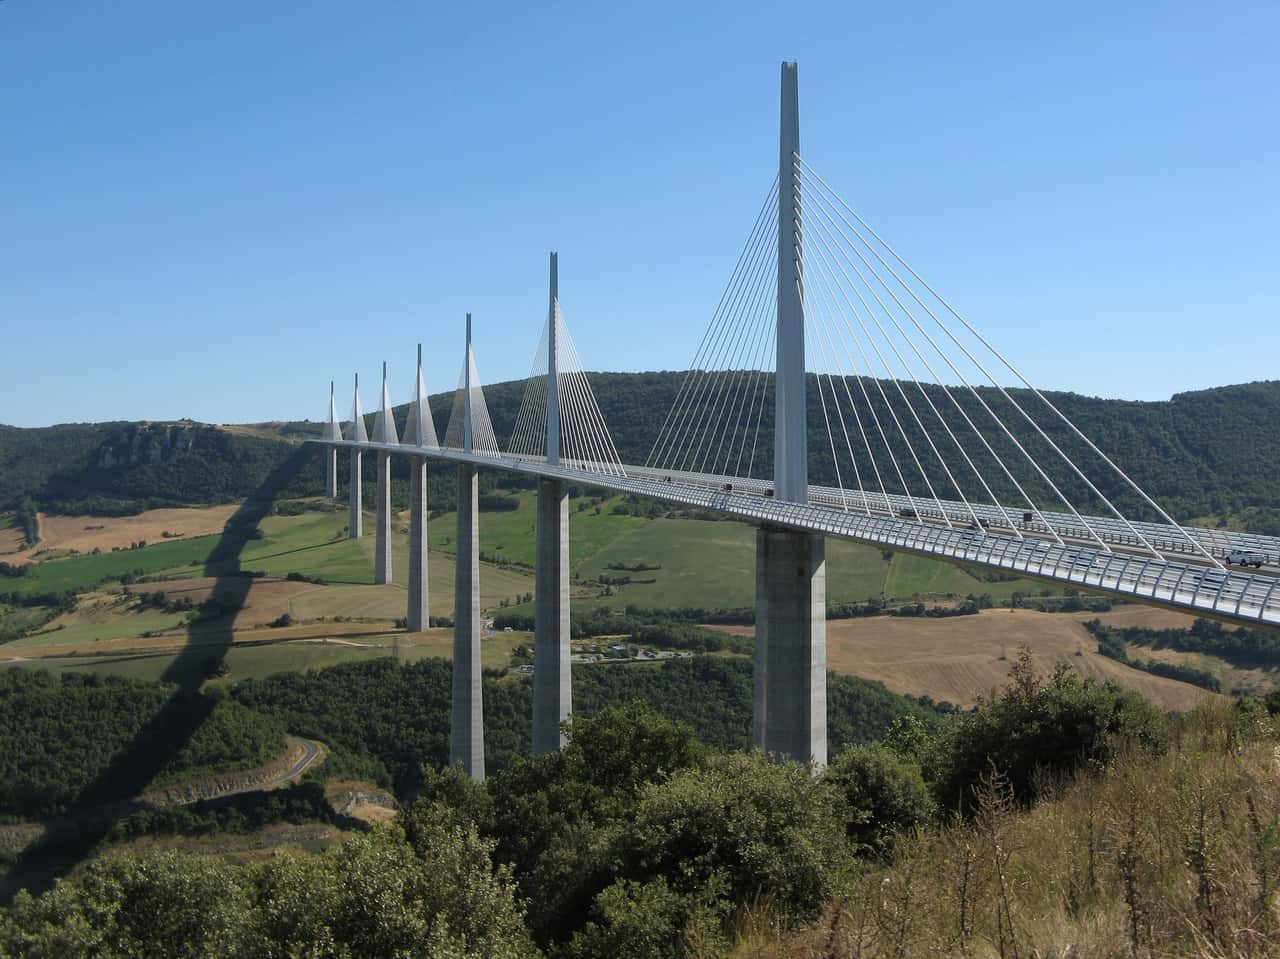 Millau Viaduct, one of the most famous bridges in the world